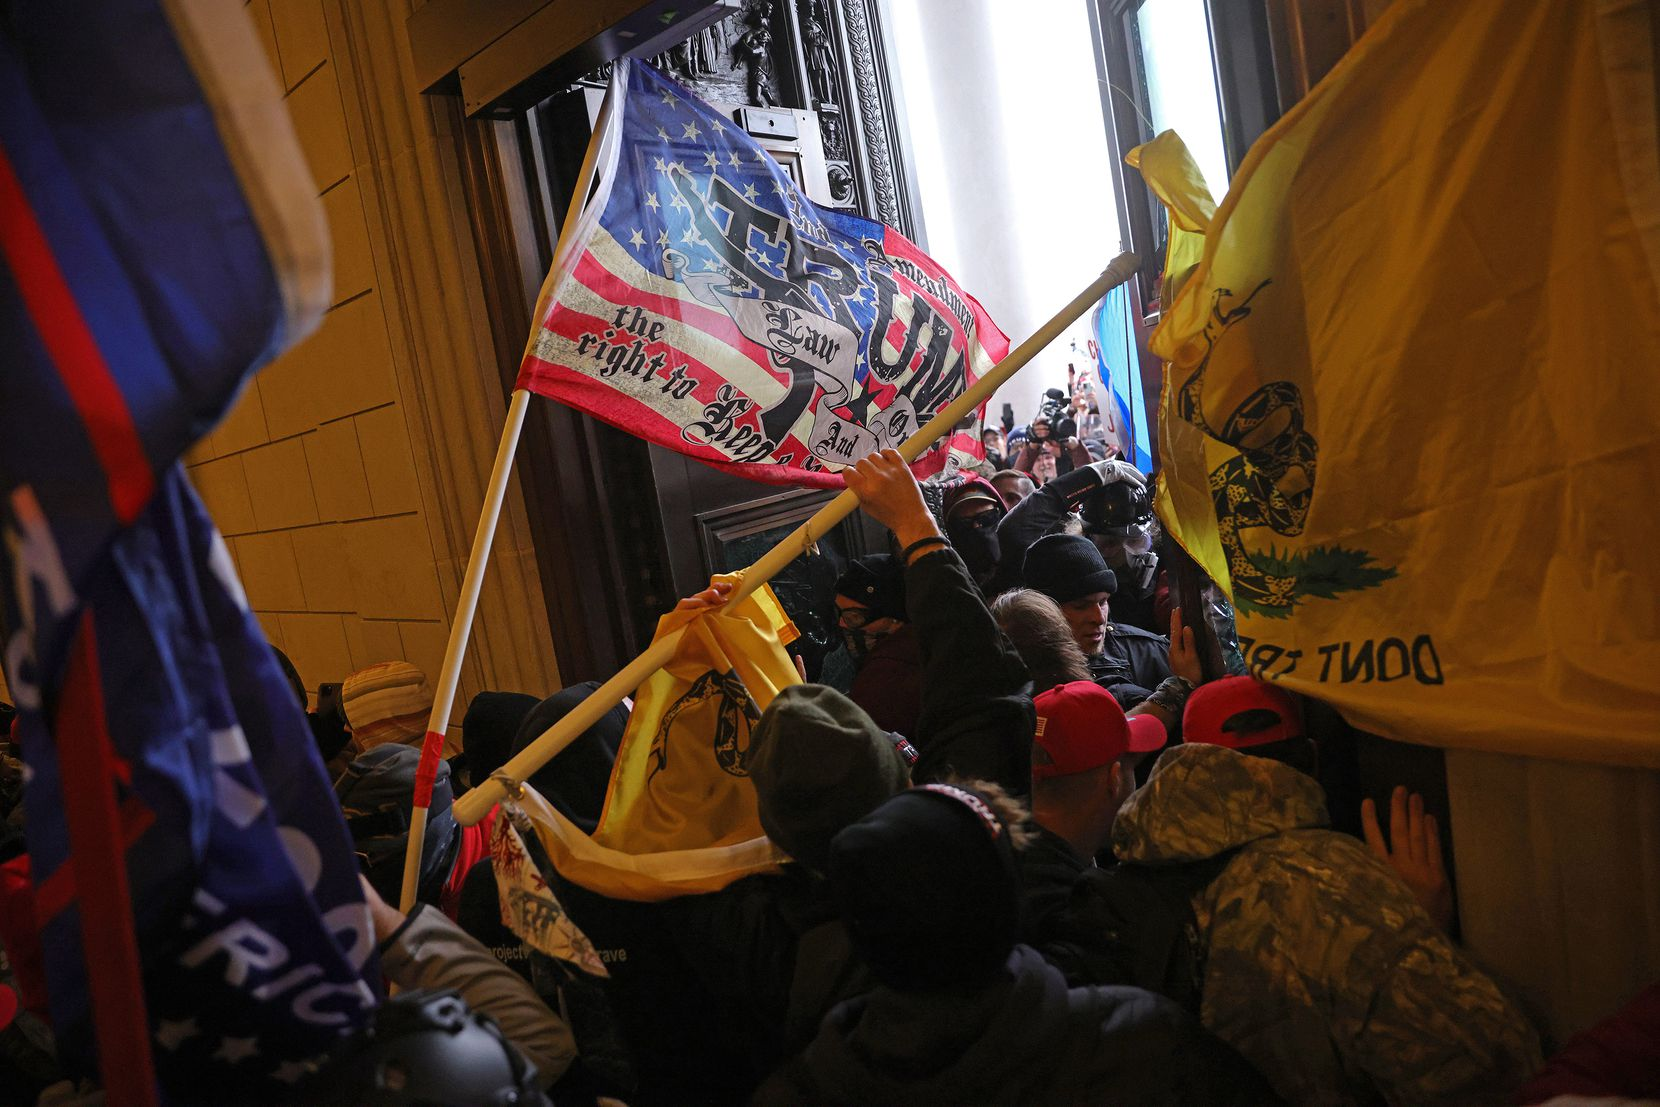 Protesters supporting U.S. President Donald Trump break into the U.S. Capitol on Wednesday, Jan. 6, 2021 in Washington, D.C. Congress held a joint session today to ratify President-elect Joe Biden's 306-232 Electoral College win over President Donald Trump. A group of Republican senators said they would reject the Electoral College votes of several states unless Congress appointed a commission to audit the election results. (Win McNamee/Getty Images/TNS)